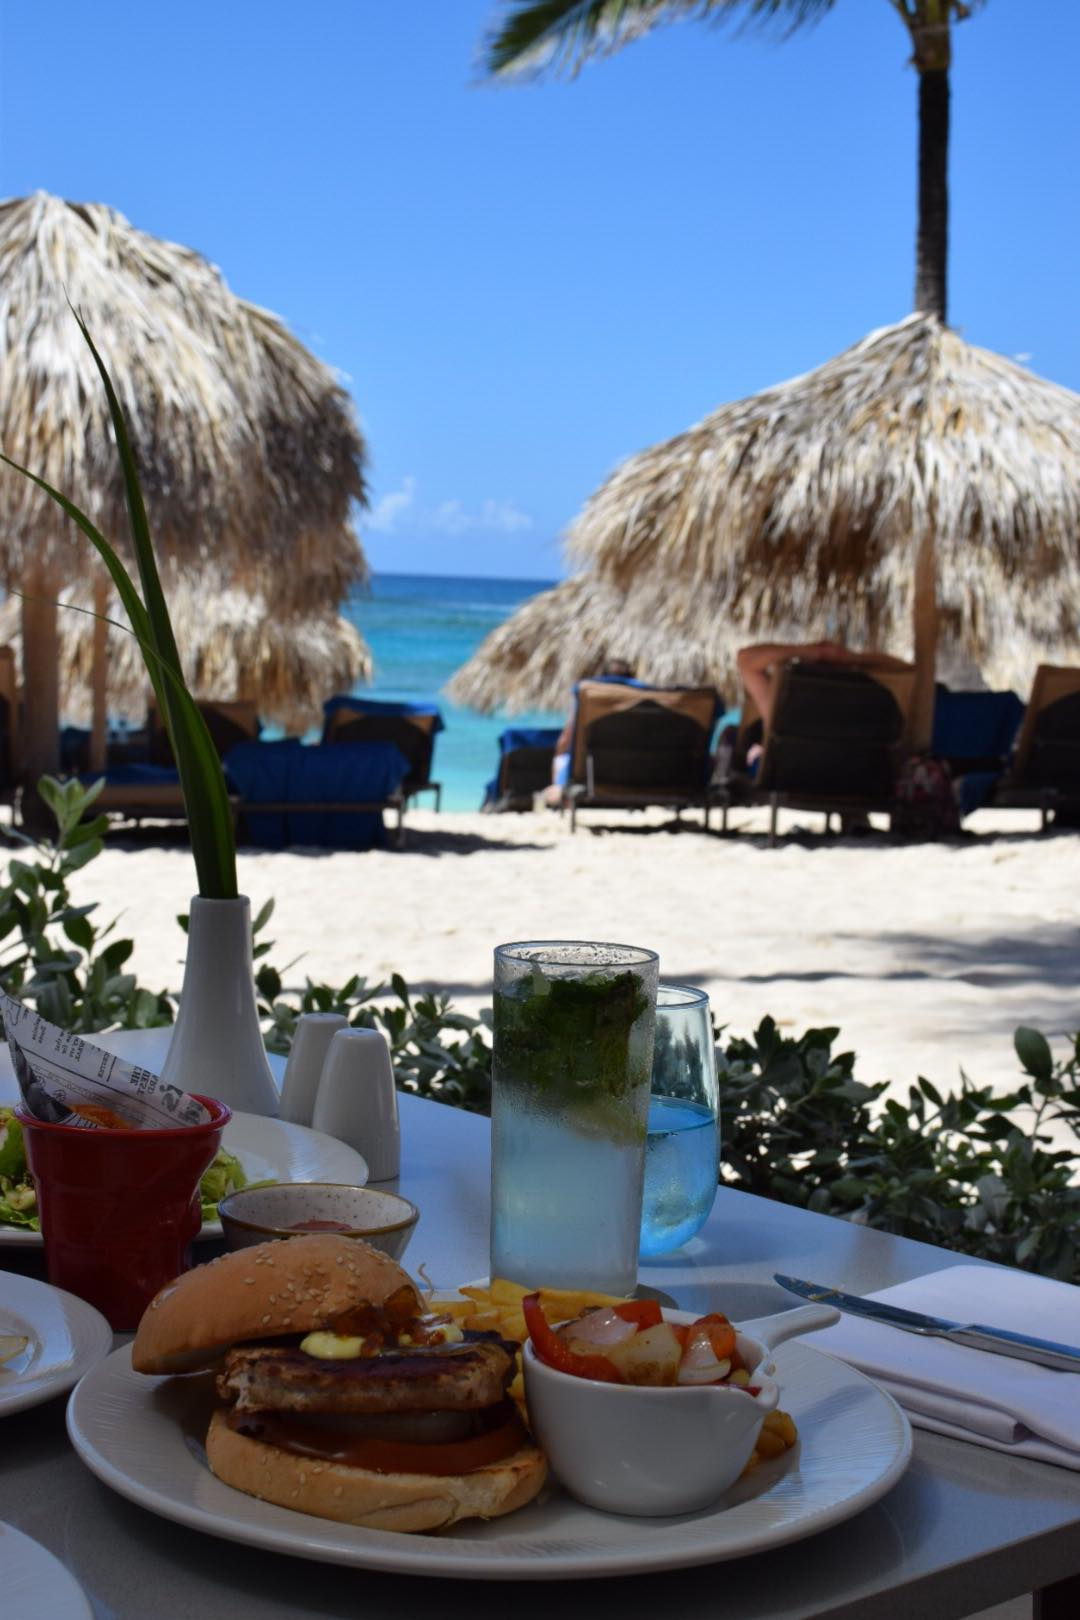 Saling Life Day 60: Food Trip and meeting new friends here in Hideaway at Royalton Punta Cana, Dominican Republic